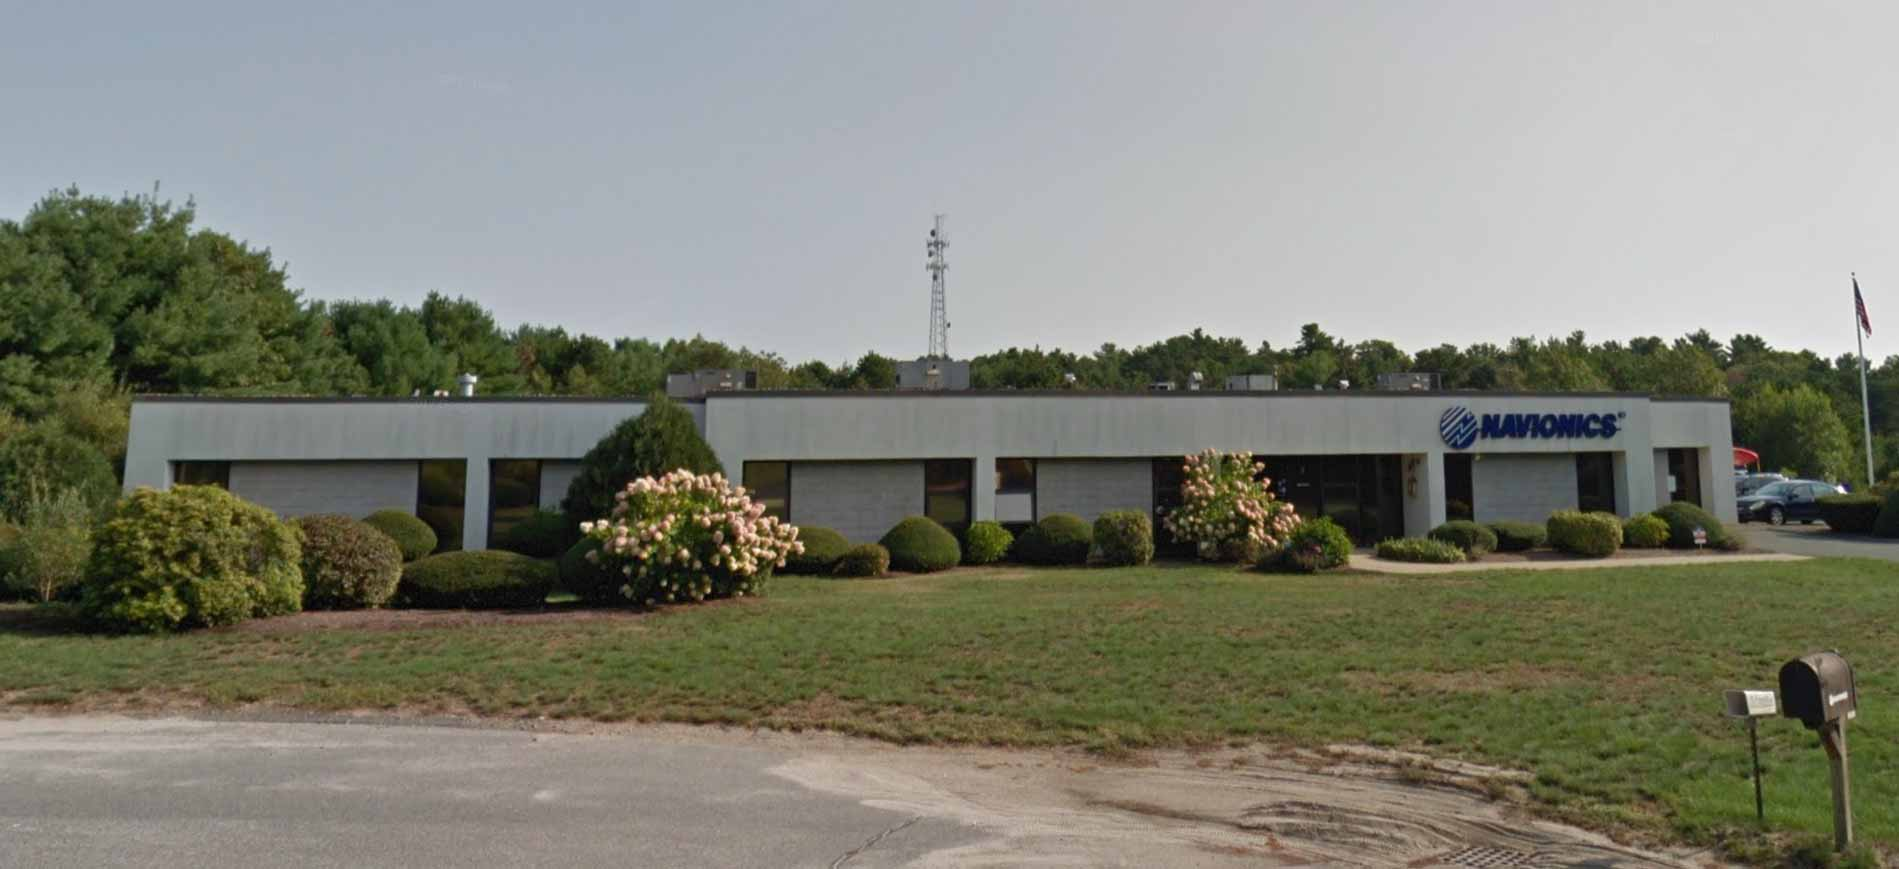 Exterior of Trade Routes Wareham Dispensary - Credit: Google Maps